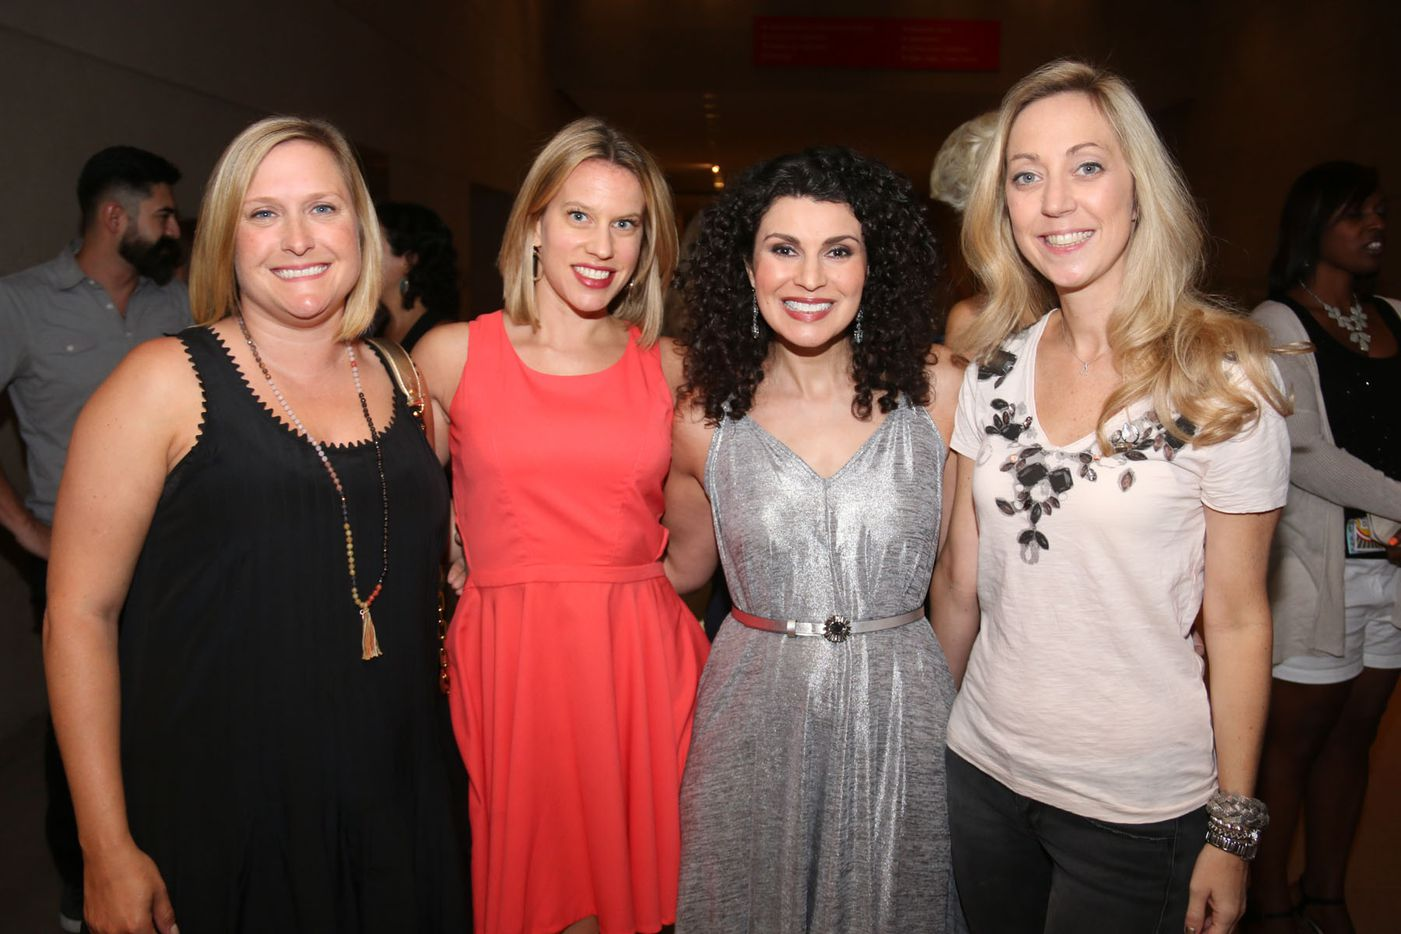 Monica Berry third  participated in the Oral Fixation  best of season four shown here with her friends at the Dallas Museum of Art on August 15, 2015